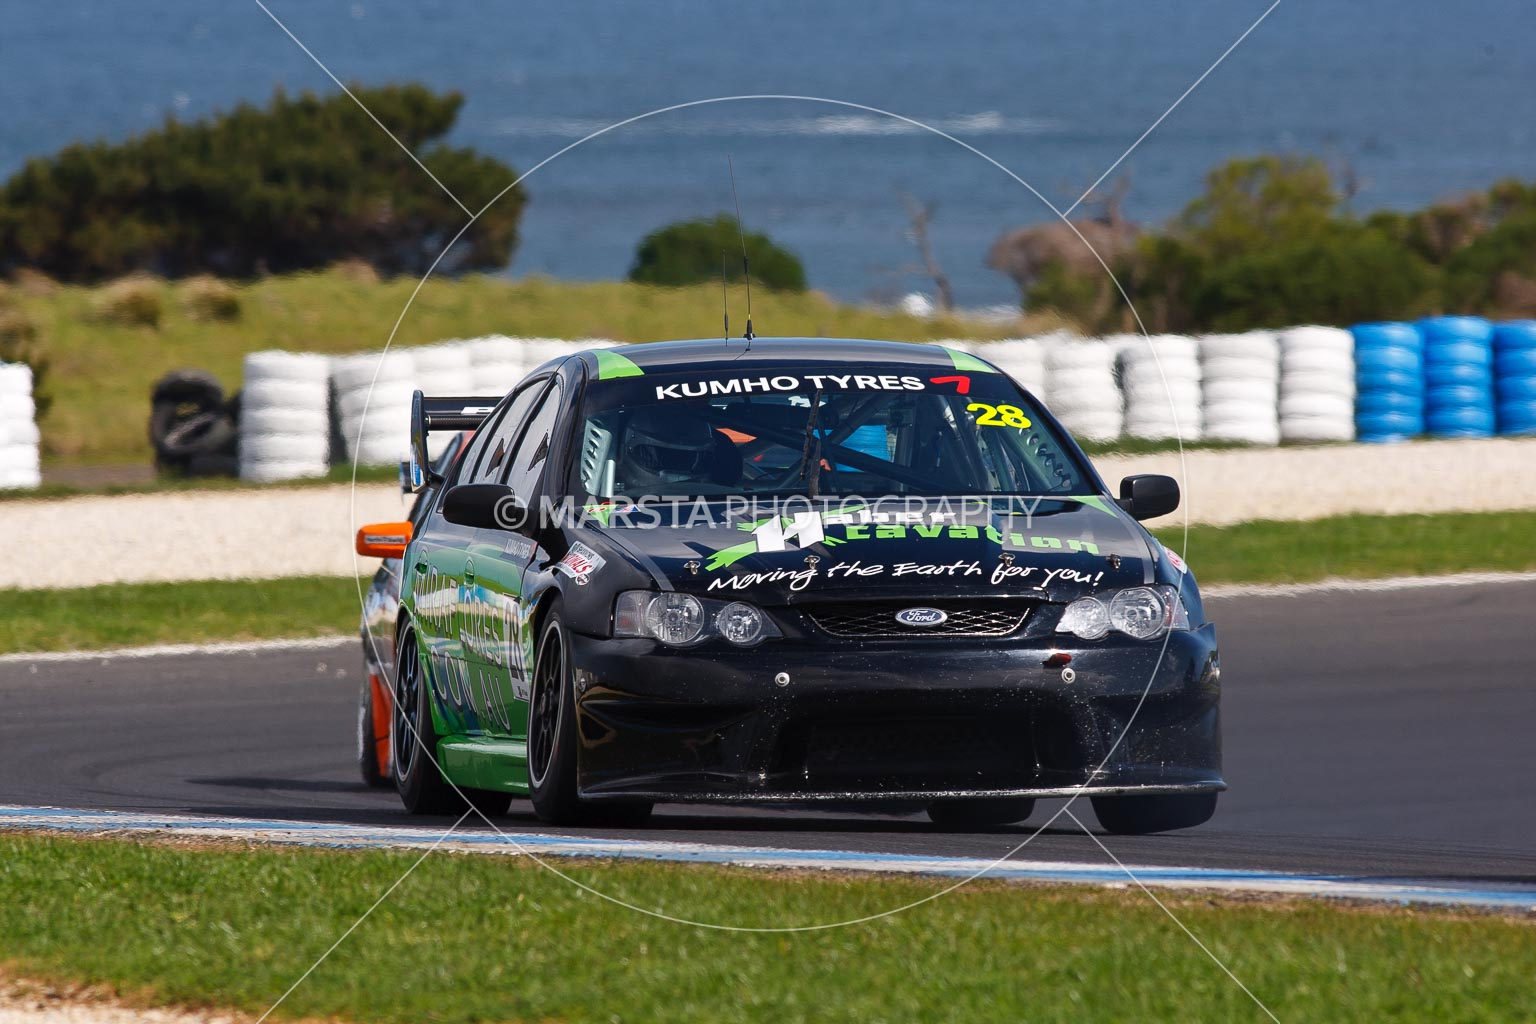 (28);23 September 2012;Australia;Ford Falcon BA;Morgan Haber;Phillip Island;Shannons Nationals;V8 Touring Cars;VIC;Victoria;auto;motorsport;racing;super telephoto